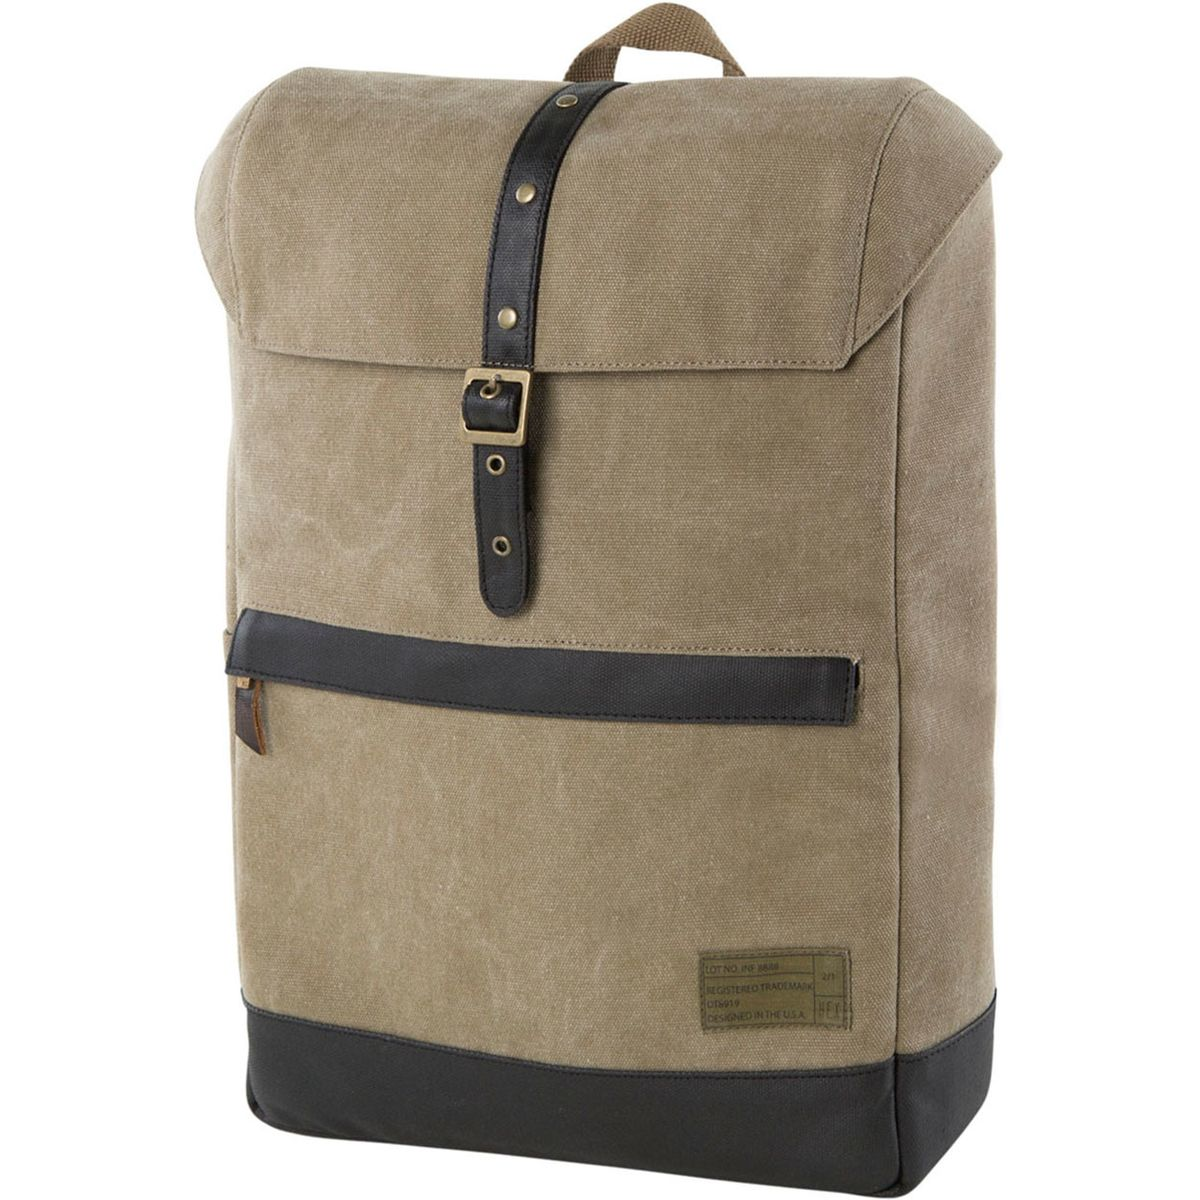 Hex Alliance Laptop Backpack Infinity Khaki One Size